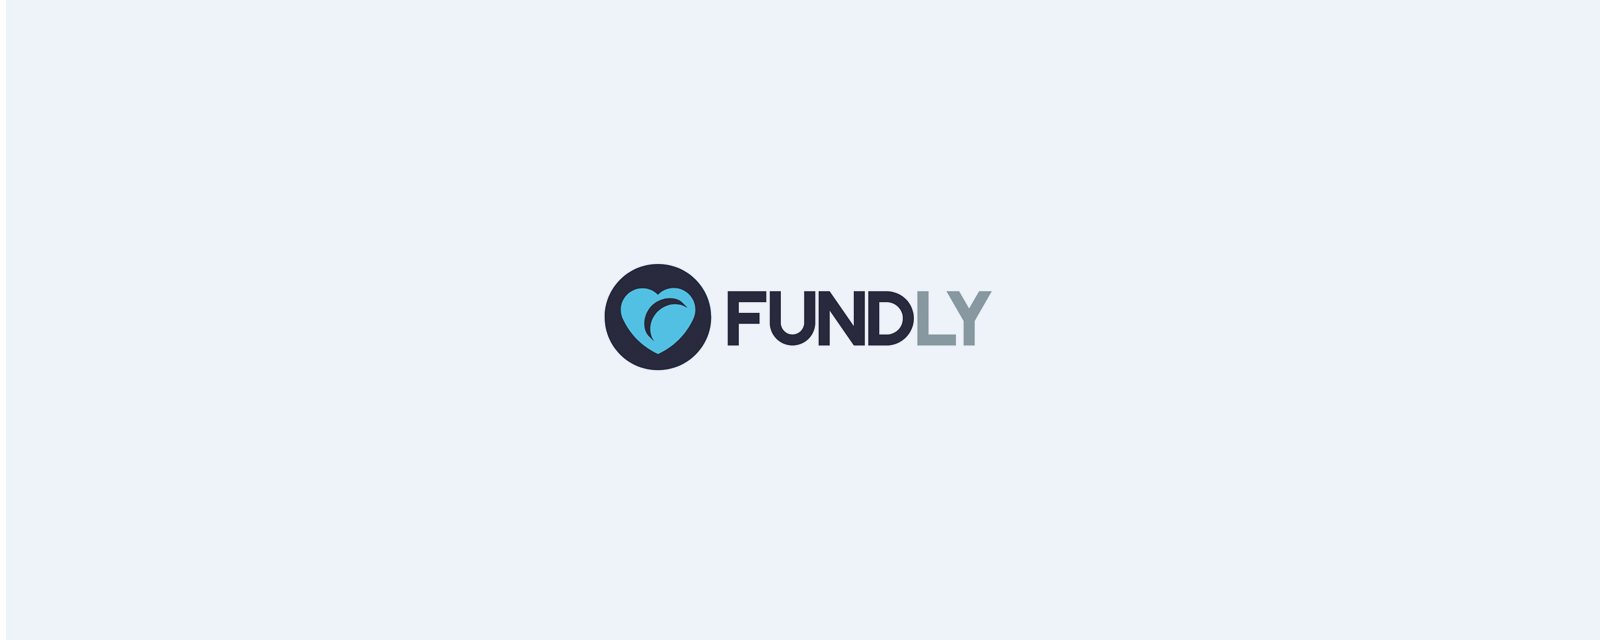 Check out Fundly's stellar fundraising website.